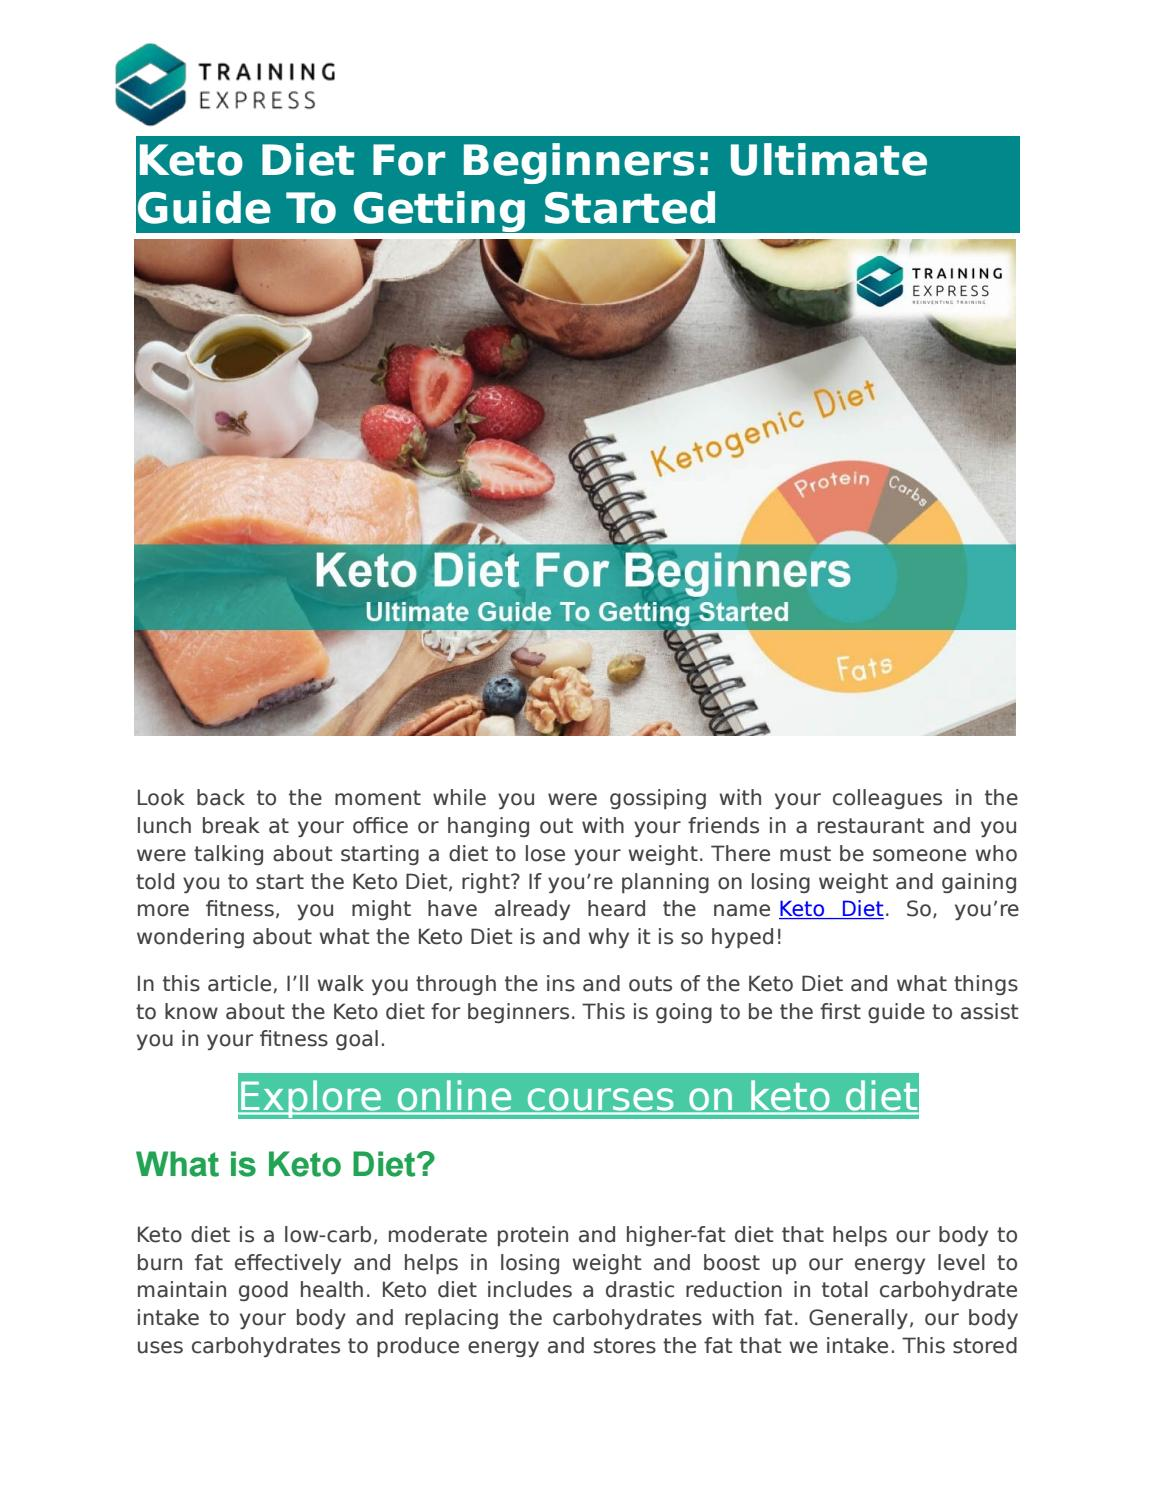 does ketogenic diet break down your stored fat